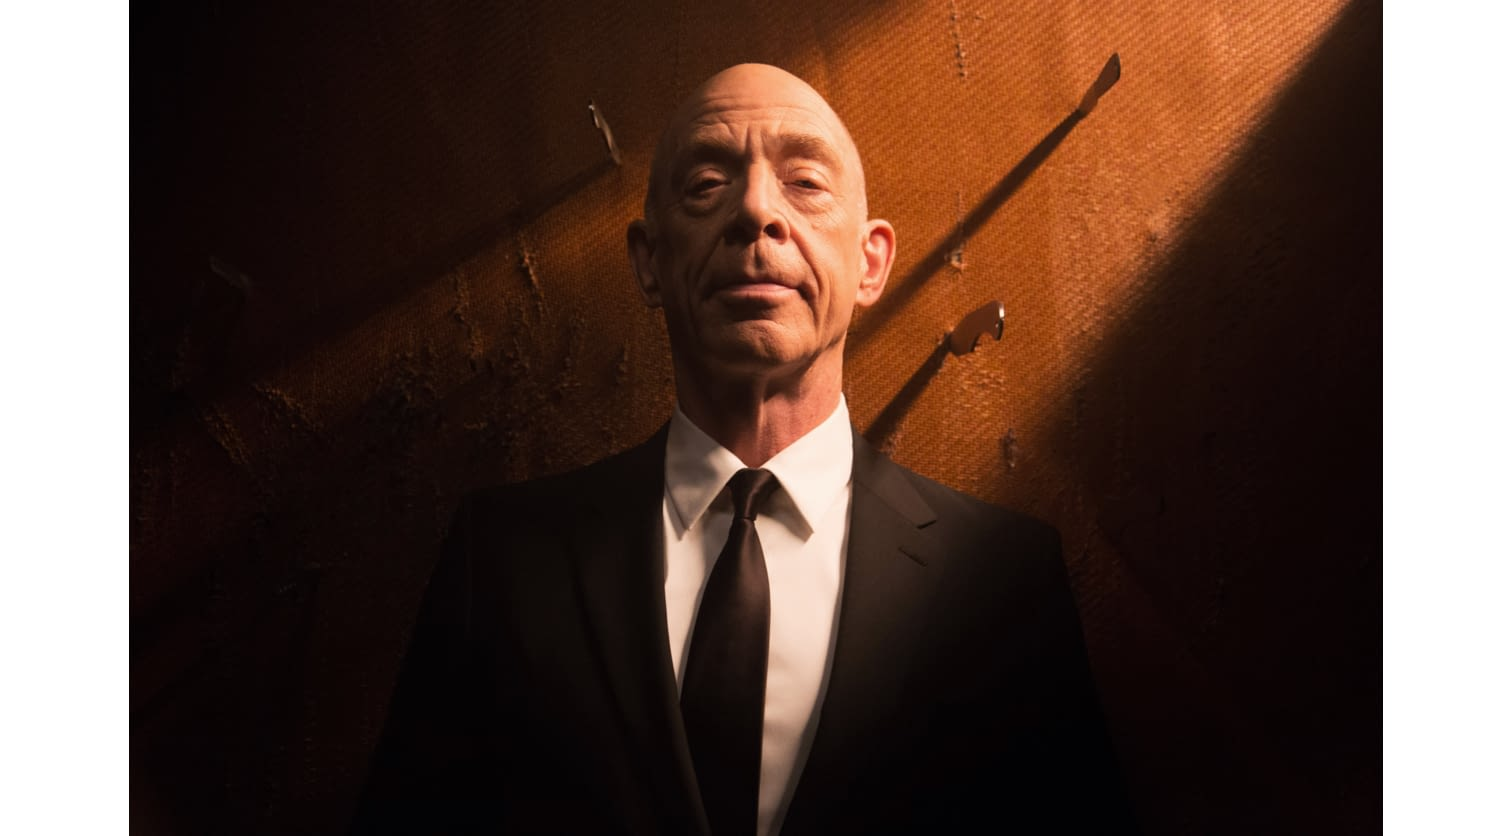 2 Prada_The Delivery Man_Episode1_JK Simmons.jpg